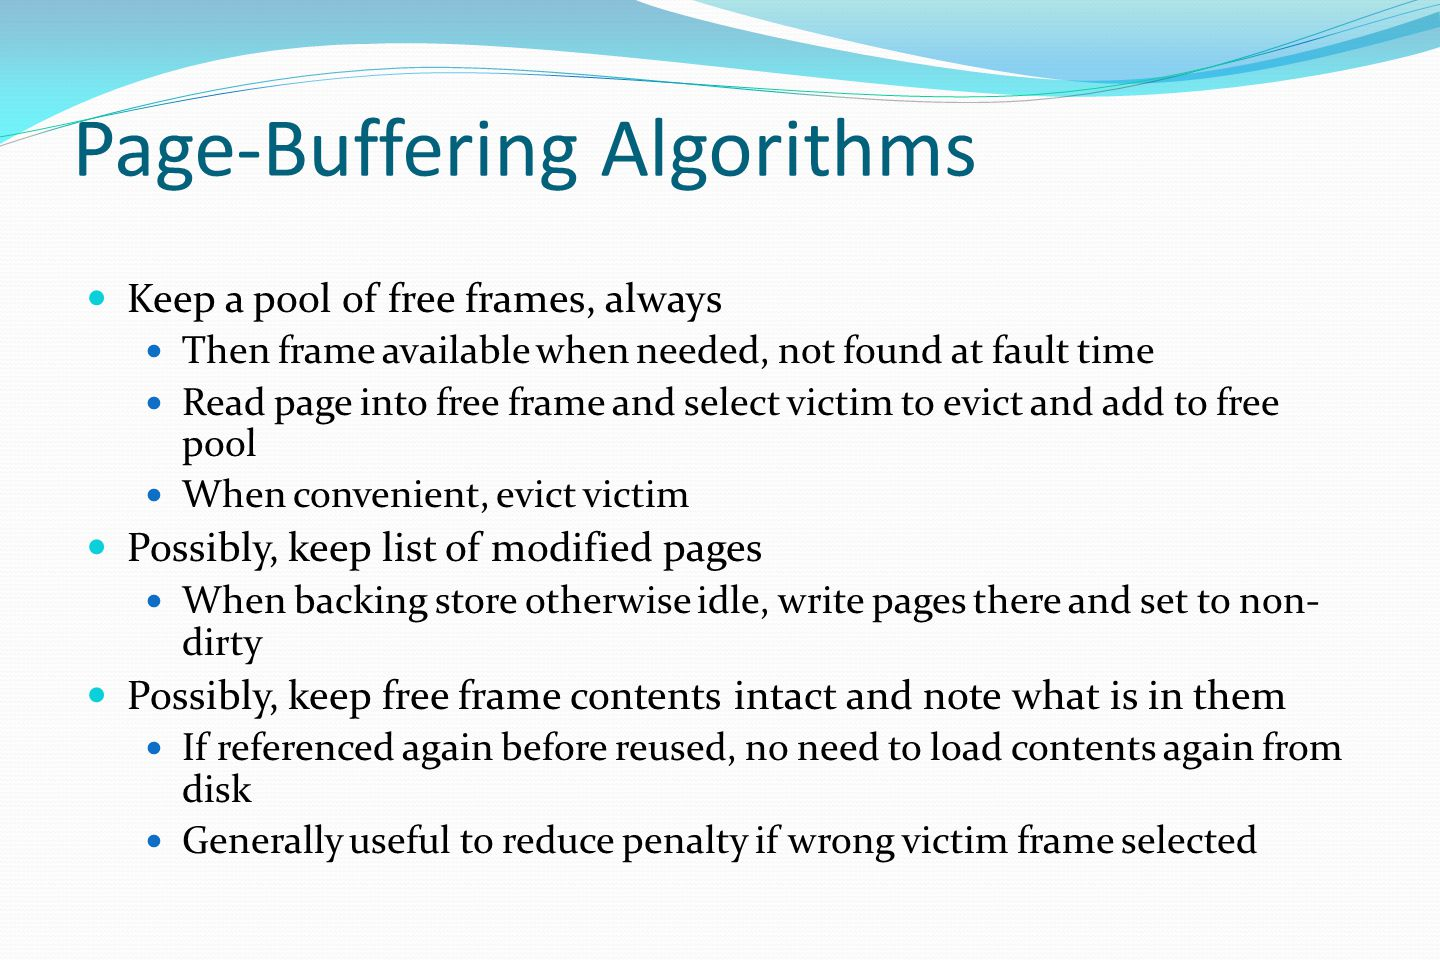 Page-Buffering Algorithms